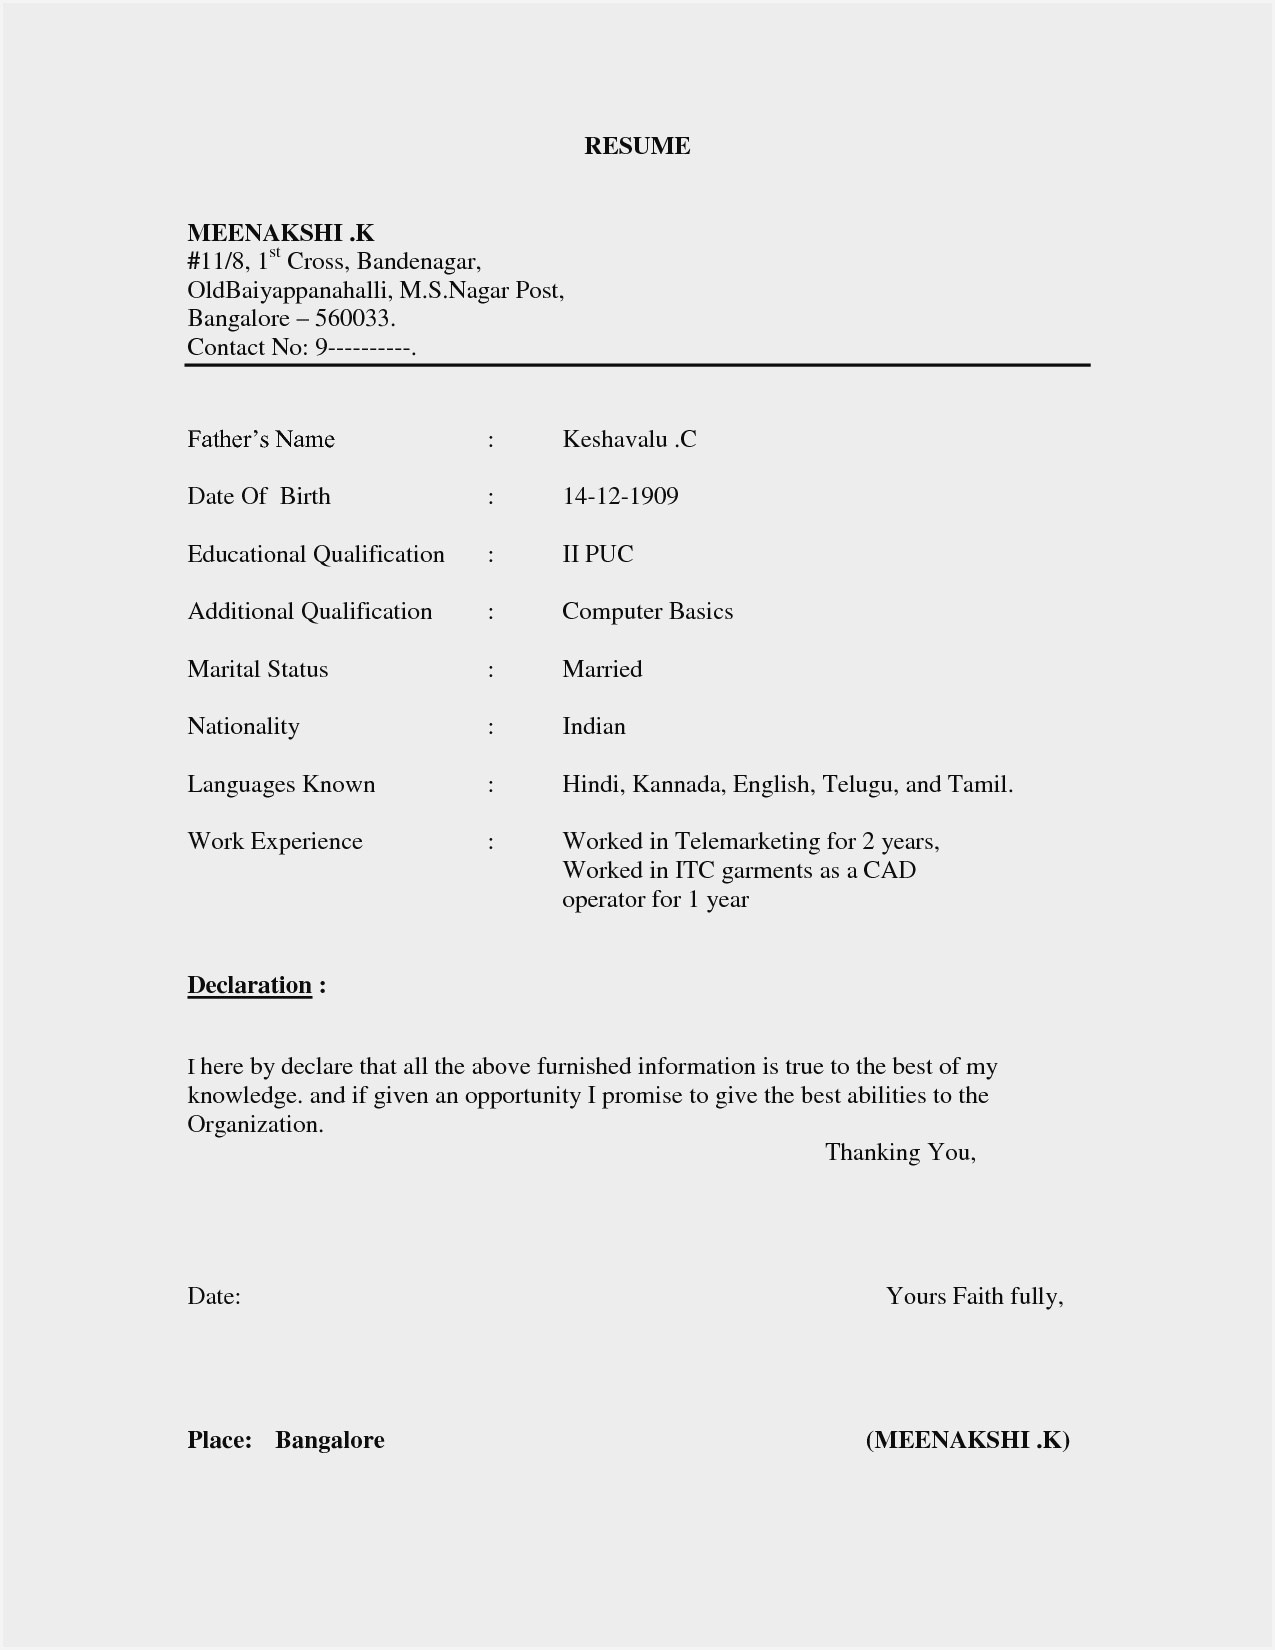 basic resume format pdf sample simple receptionist duties samples job objective ideas Resume Basic Simple Resume Sample